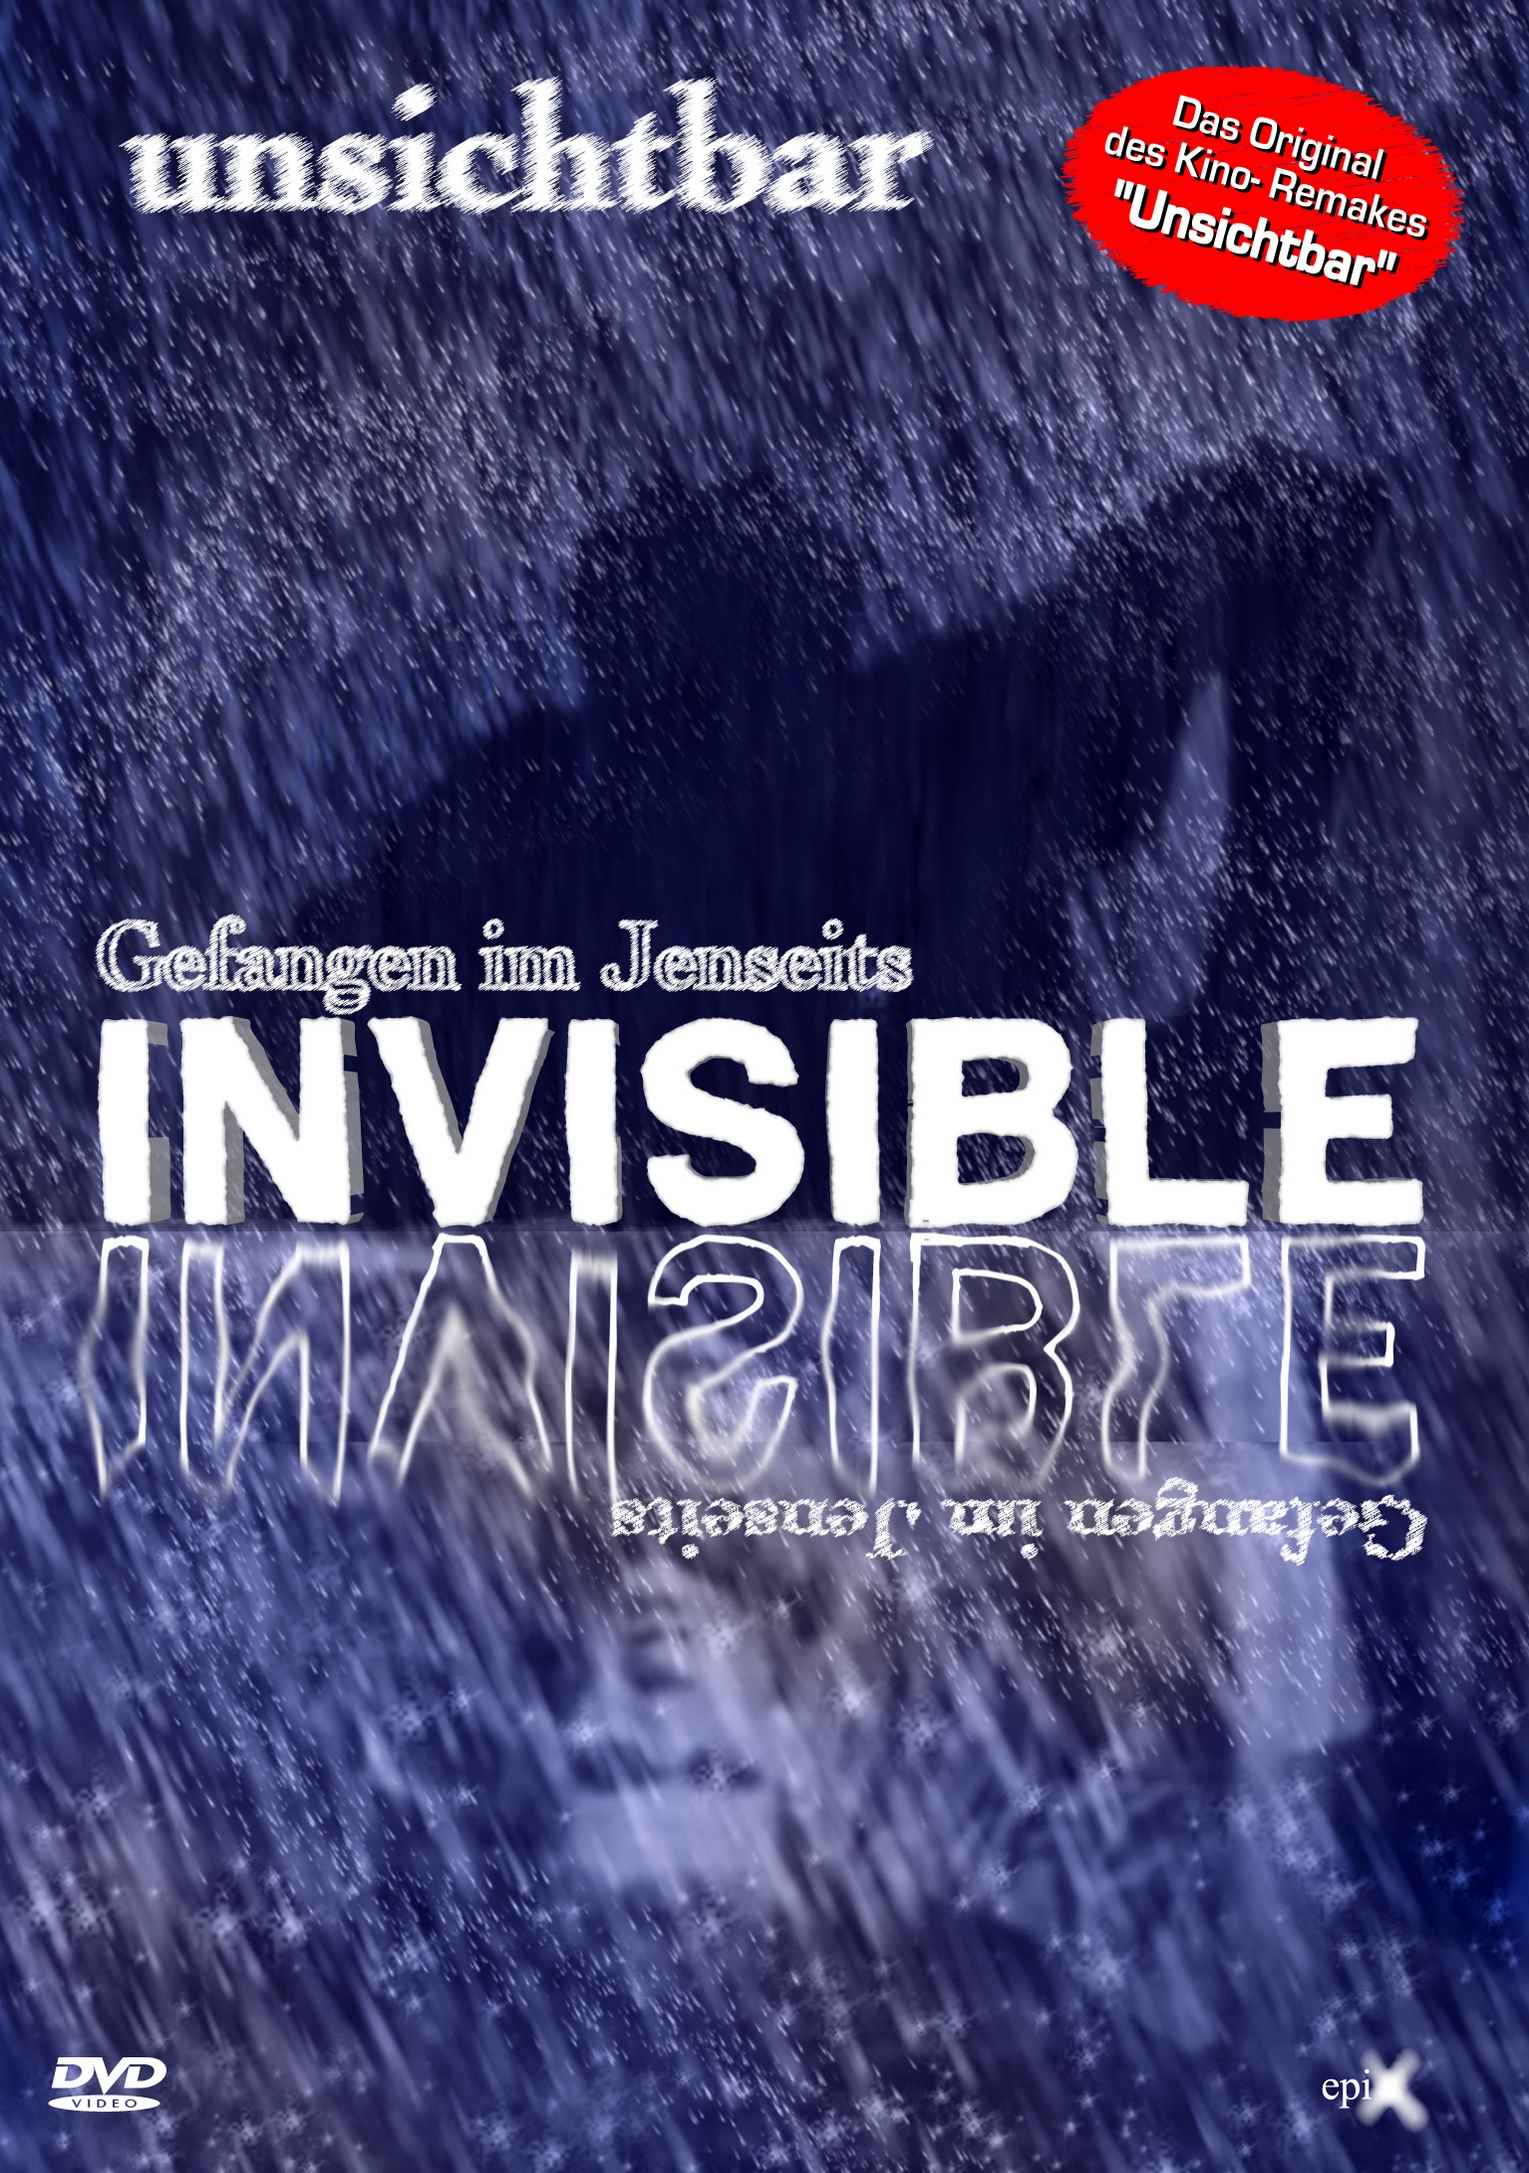 INVISIBLE_Relaunch Front Final